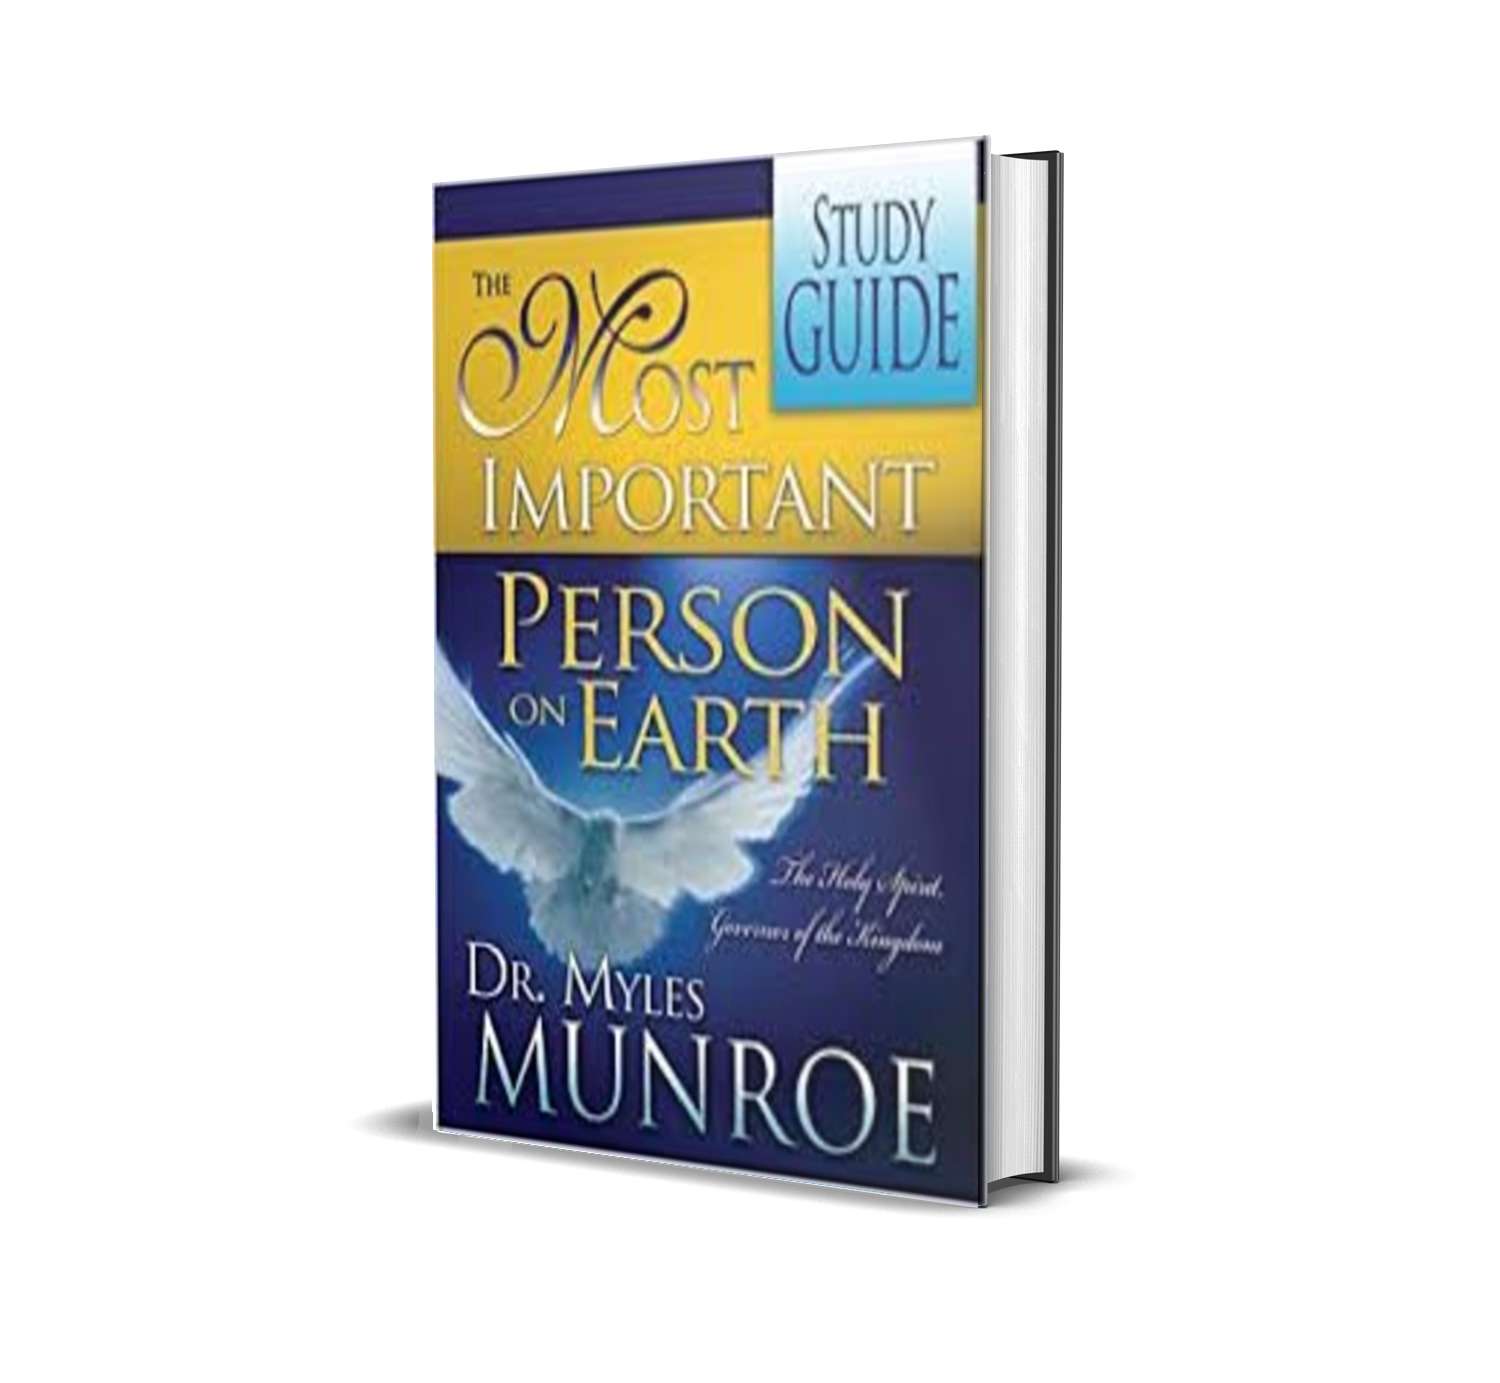 THE MOST IMPORTANT PERSON ON EARTH MYLES MUNROE